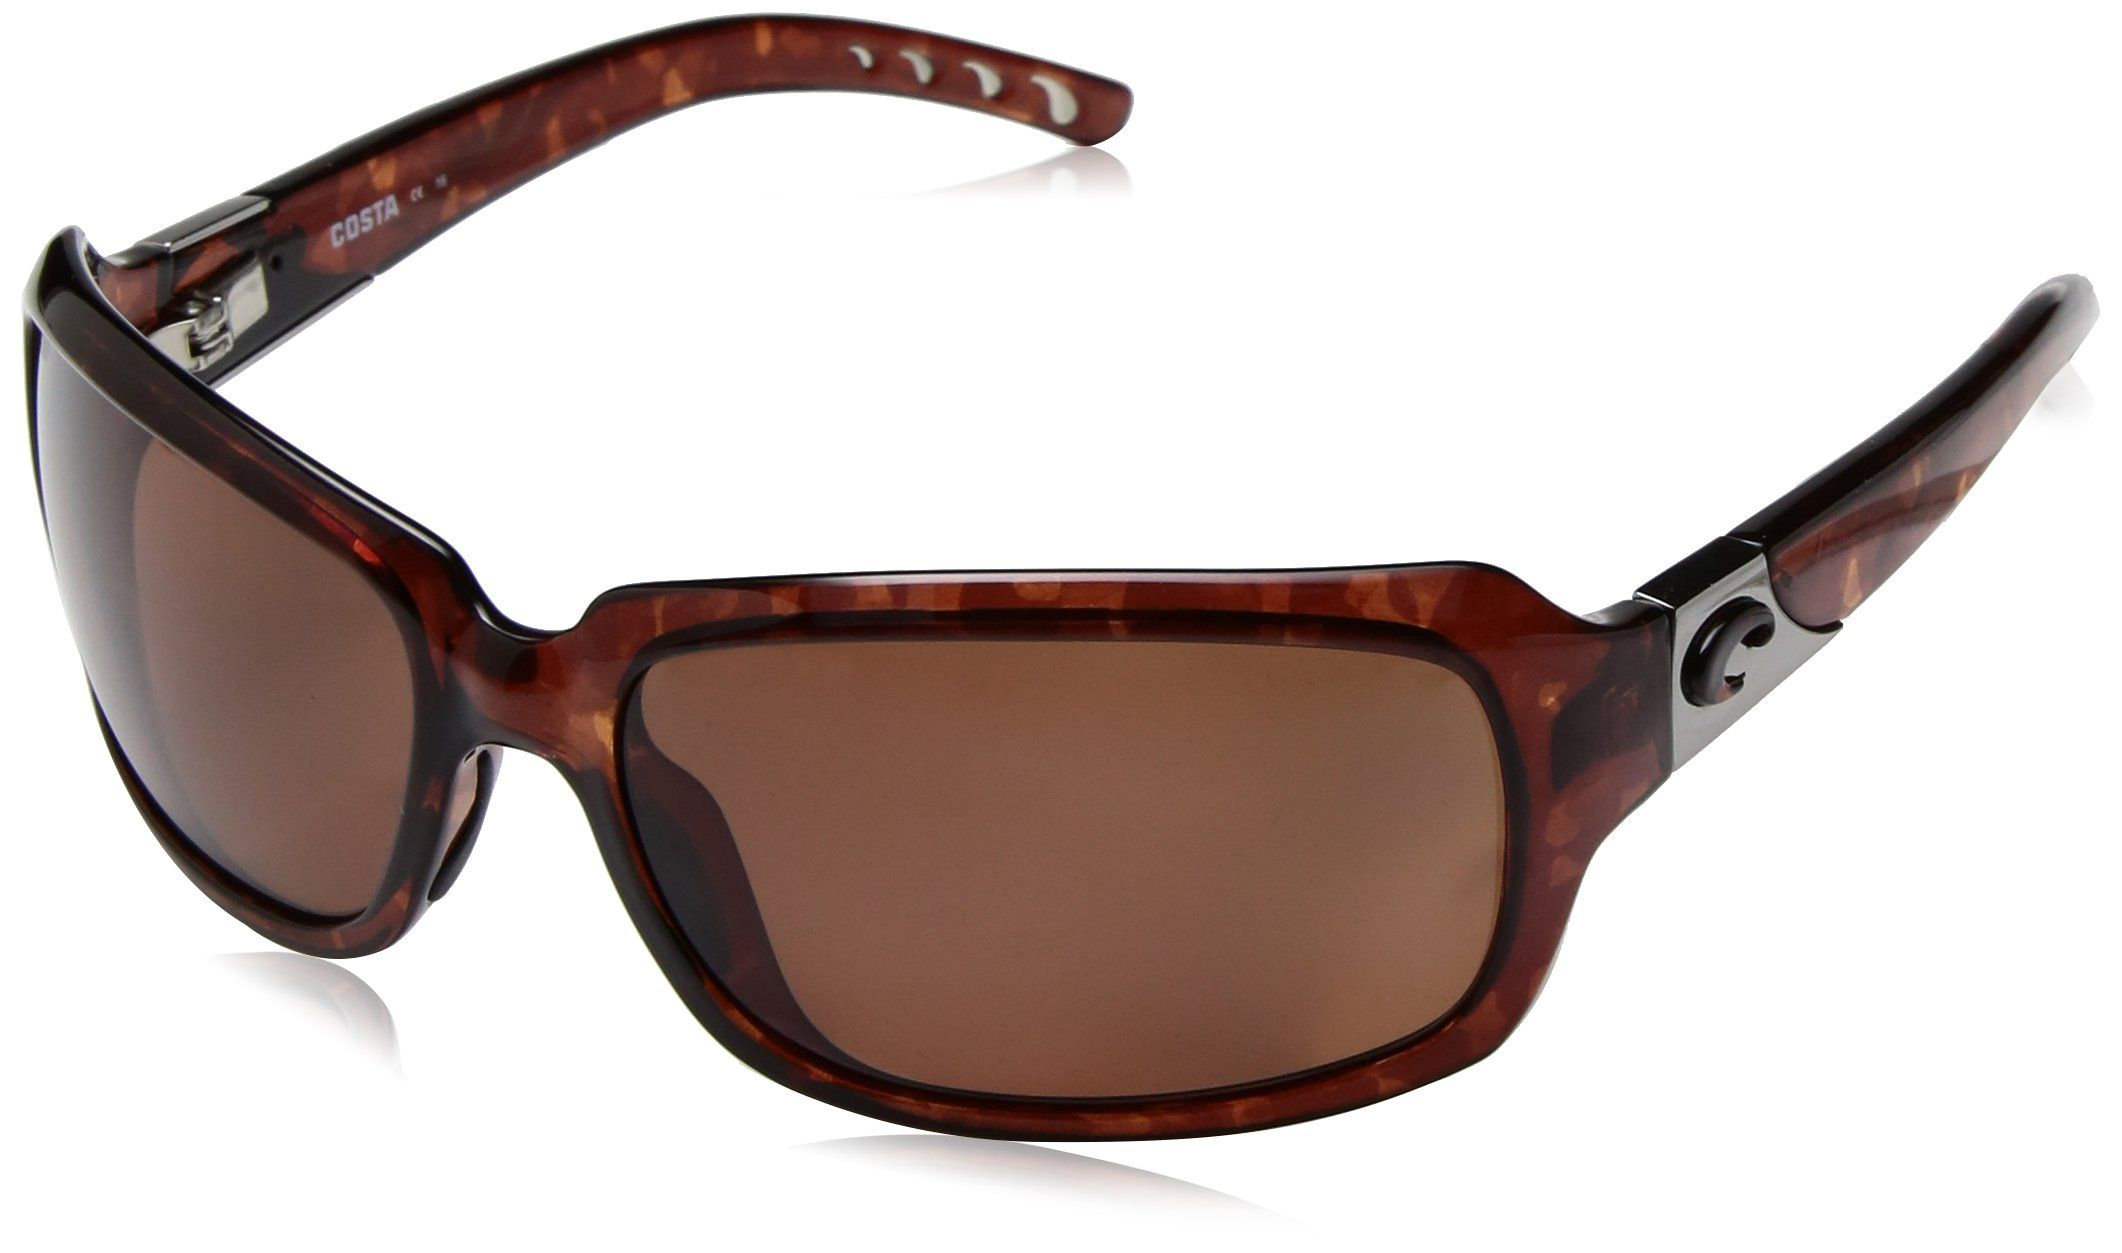 2e0e8d59402 Costa del Mar Womens Isabela IB 10 OCP Polarized Oval Sunglasses Tortoise  63.2 mm -- Details can be found by clicking on the image.